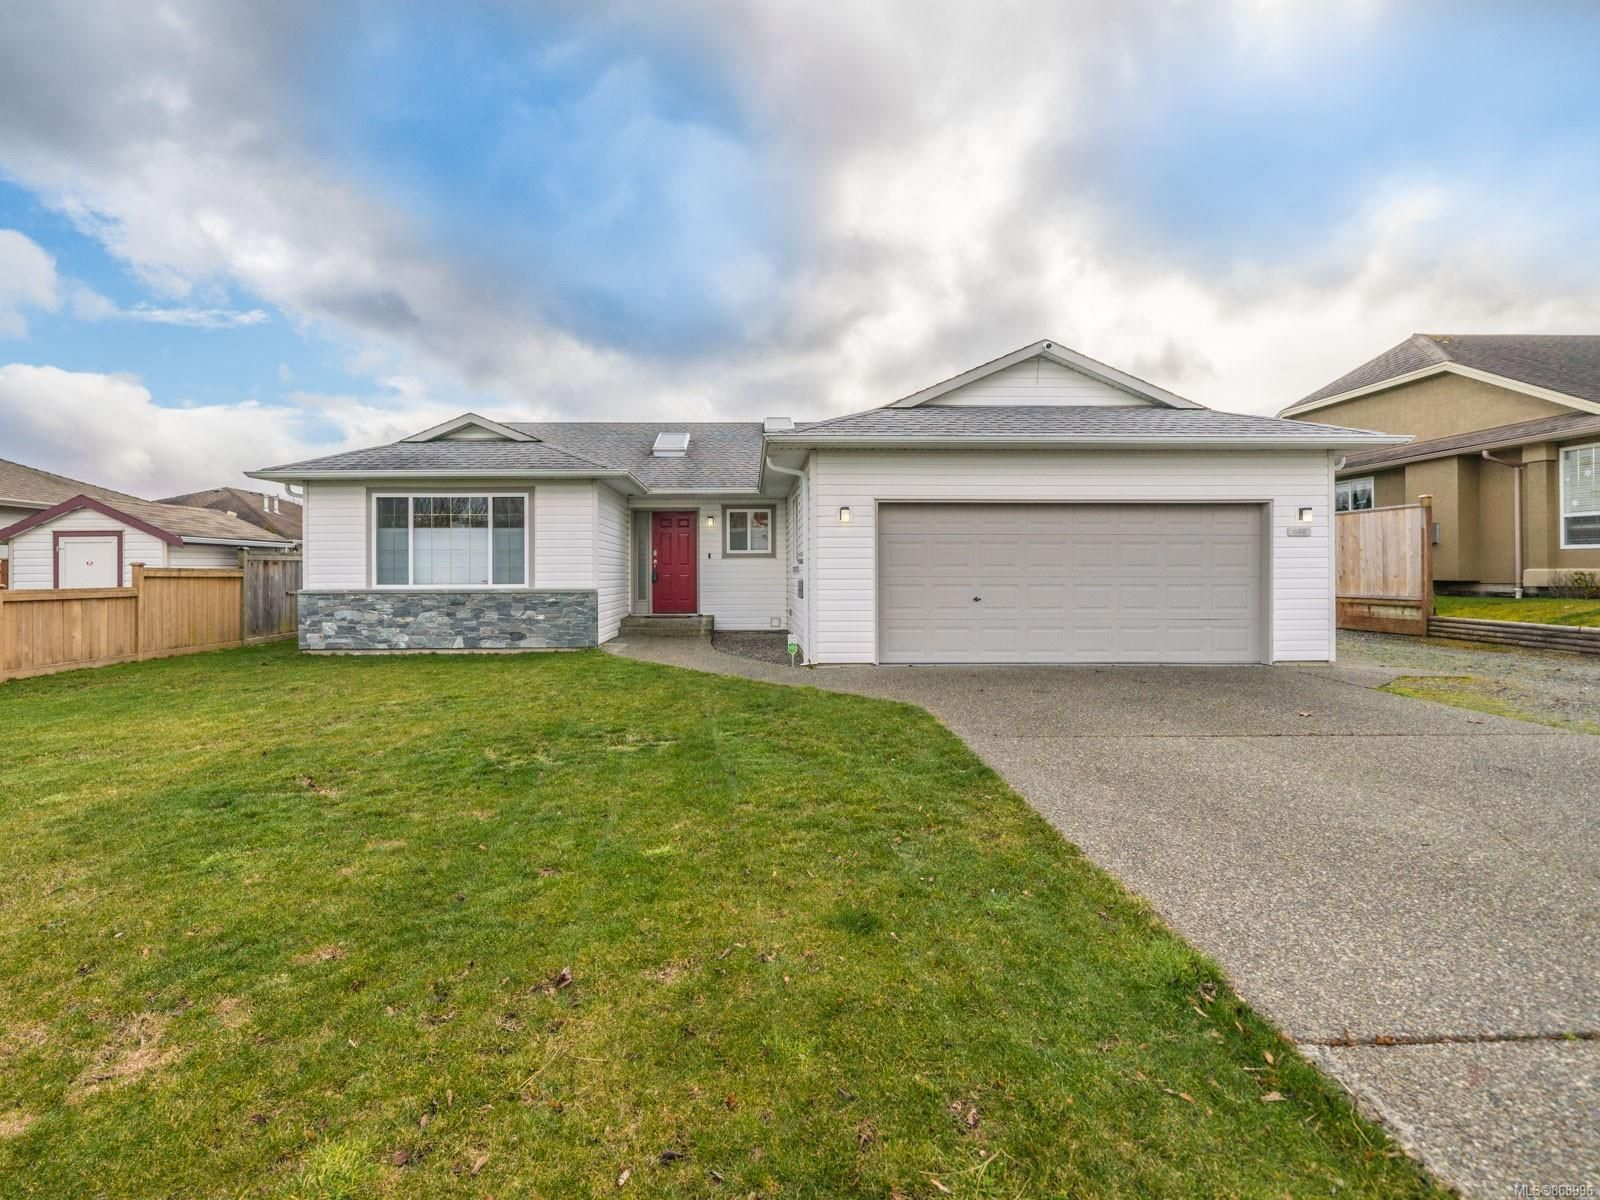 Main Photo: 688 Foxtail Ave in : PQ Parksville House for sale (Parksville/Qualicum)  : MLS®# 868996